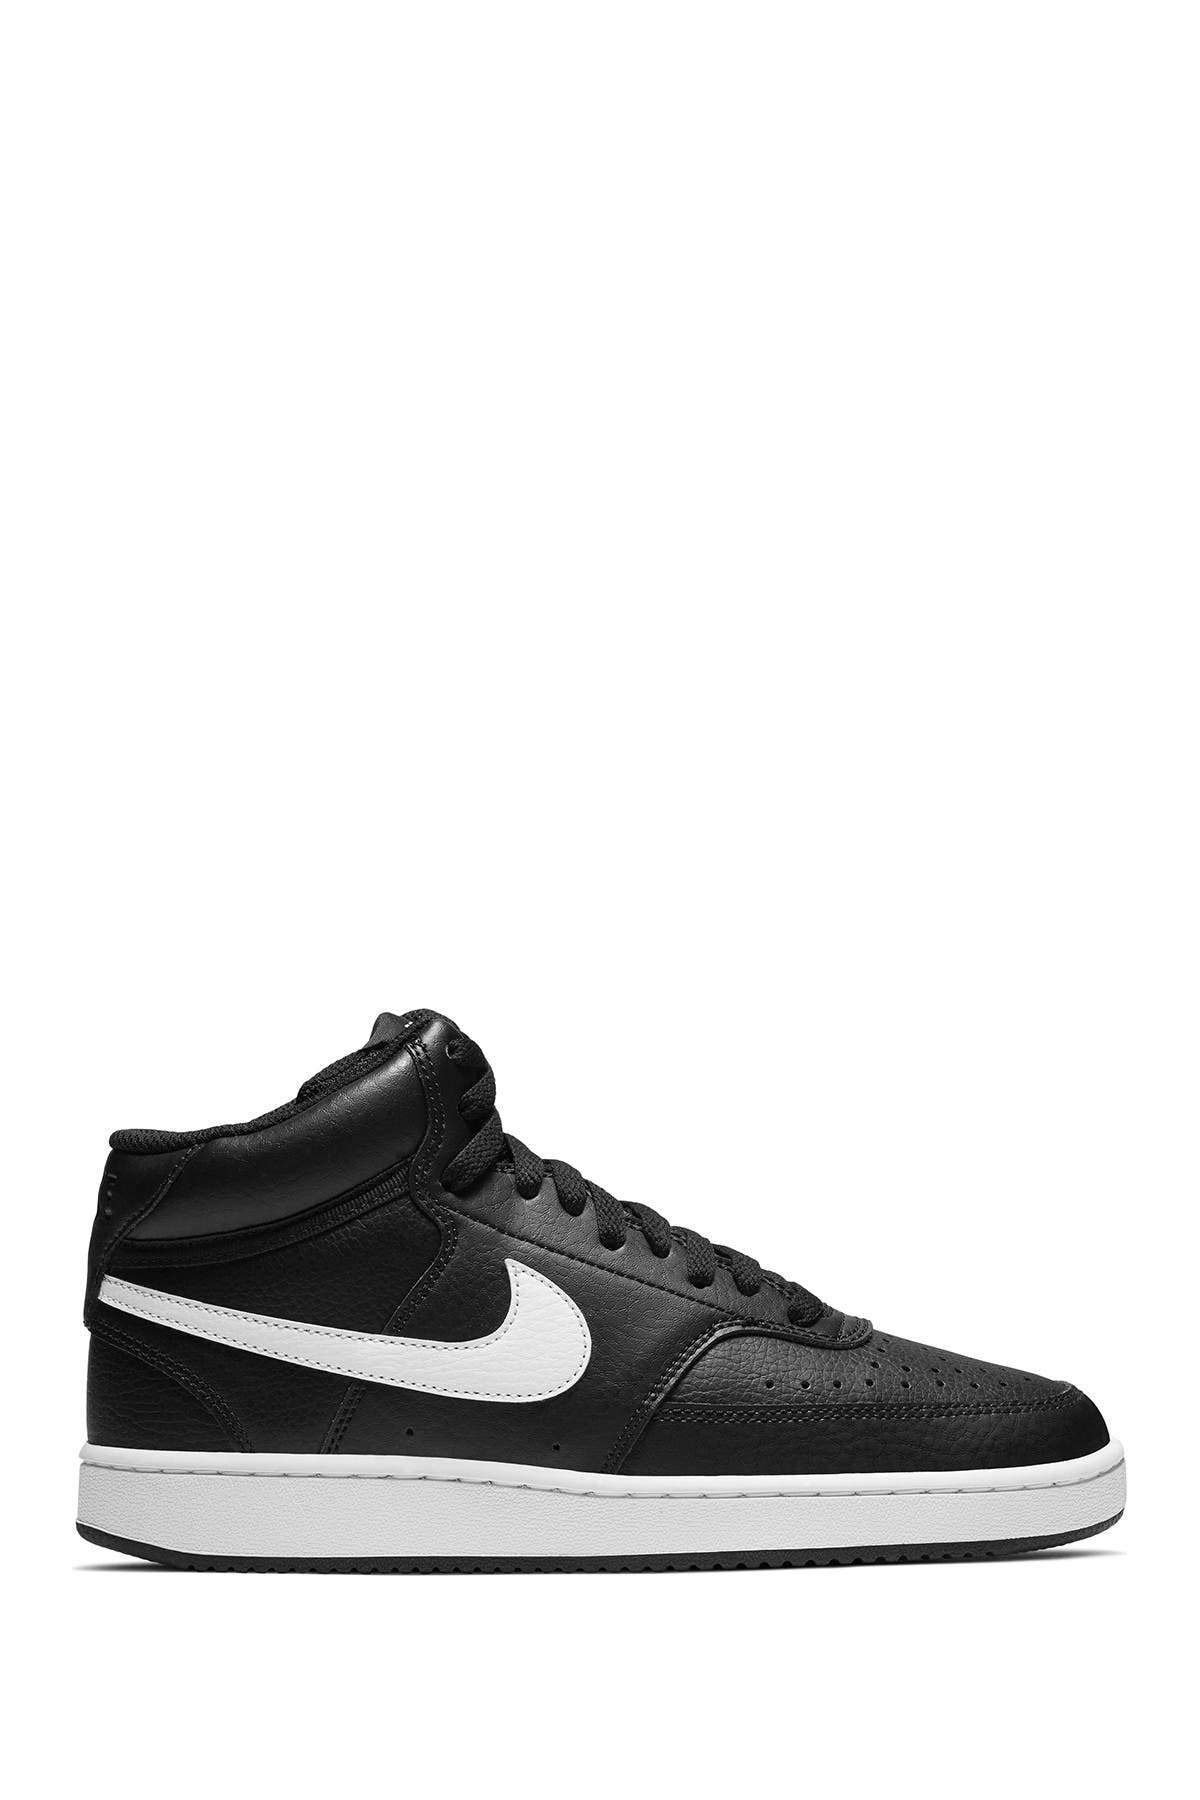 Nike | Court Vision Mid Sneaker